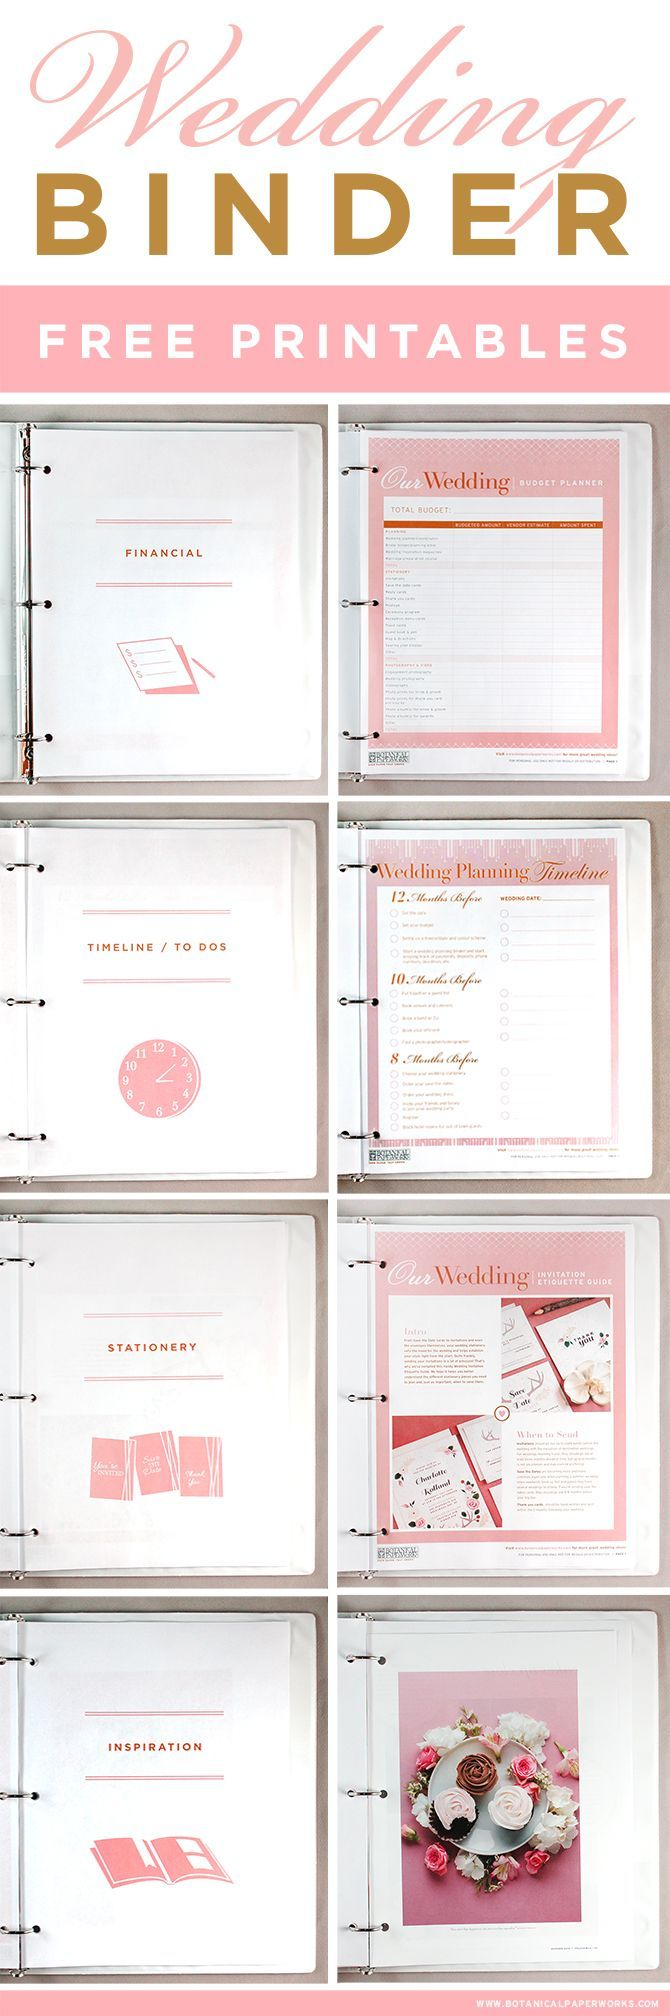 How To Make Your Own Wedding Planner With Free Printables Included